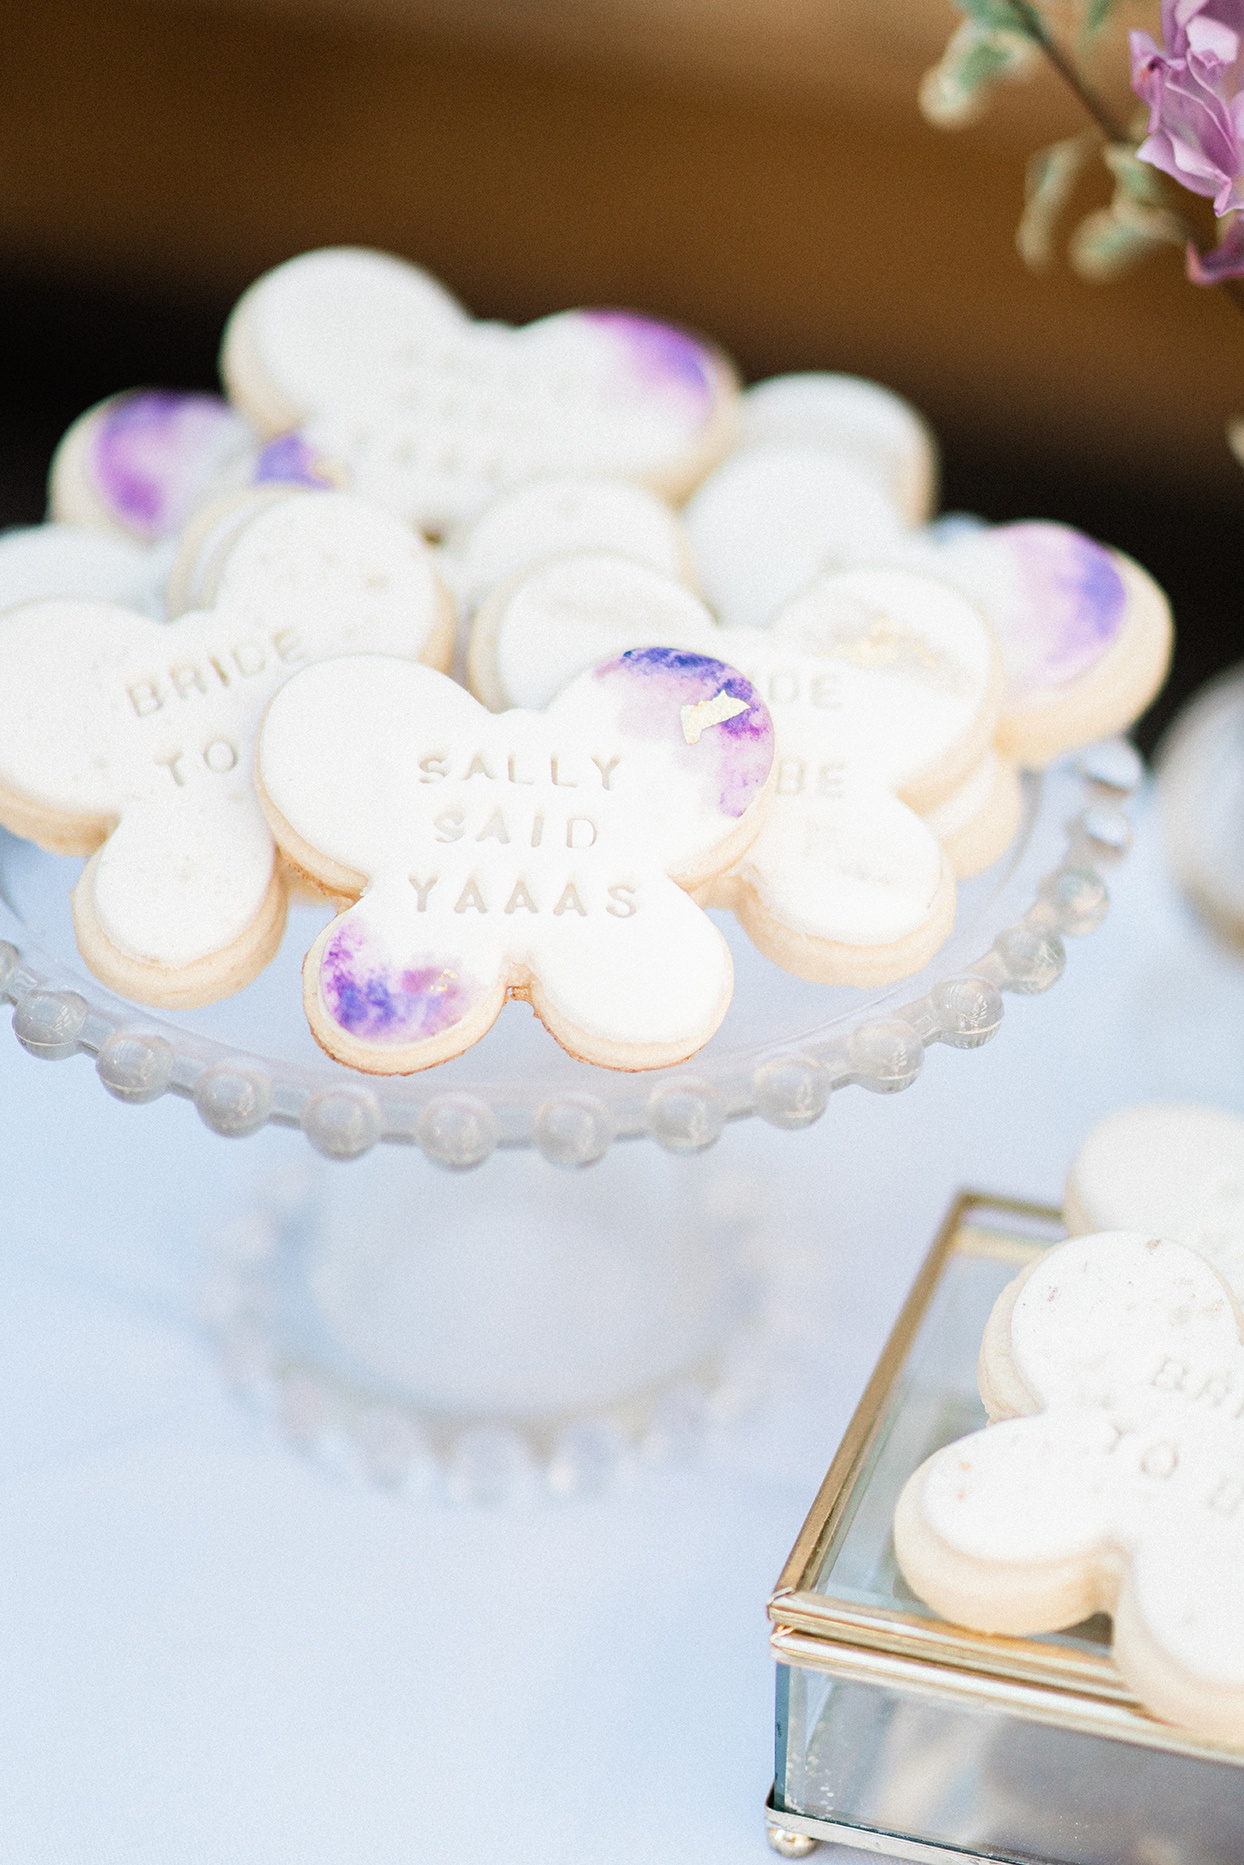 sally bridal shower butterfly shaped cookies on tray